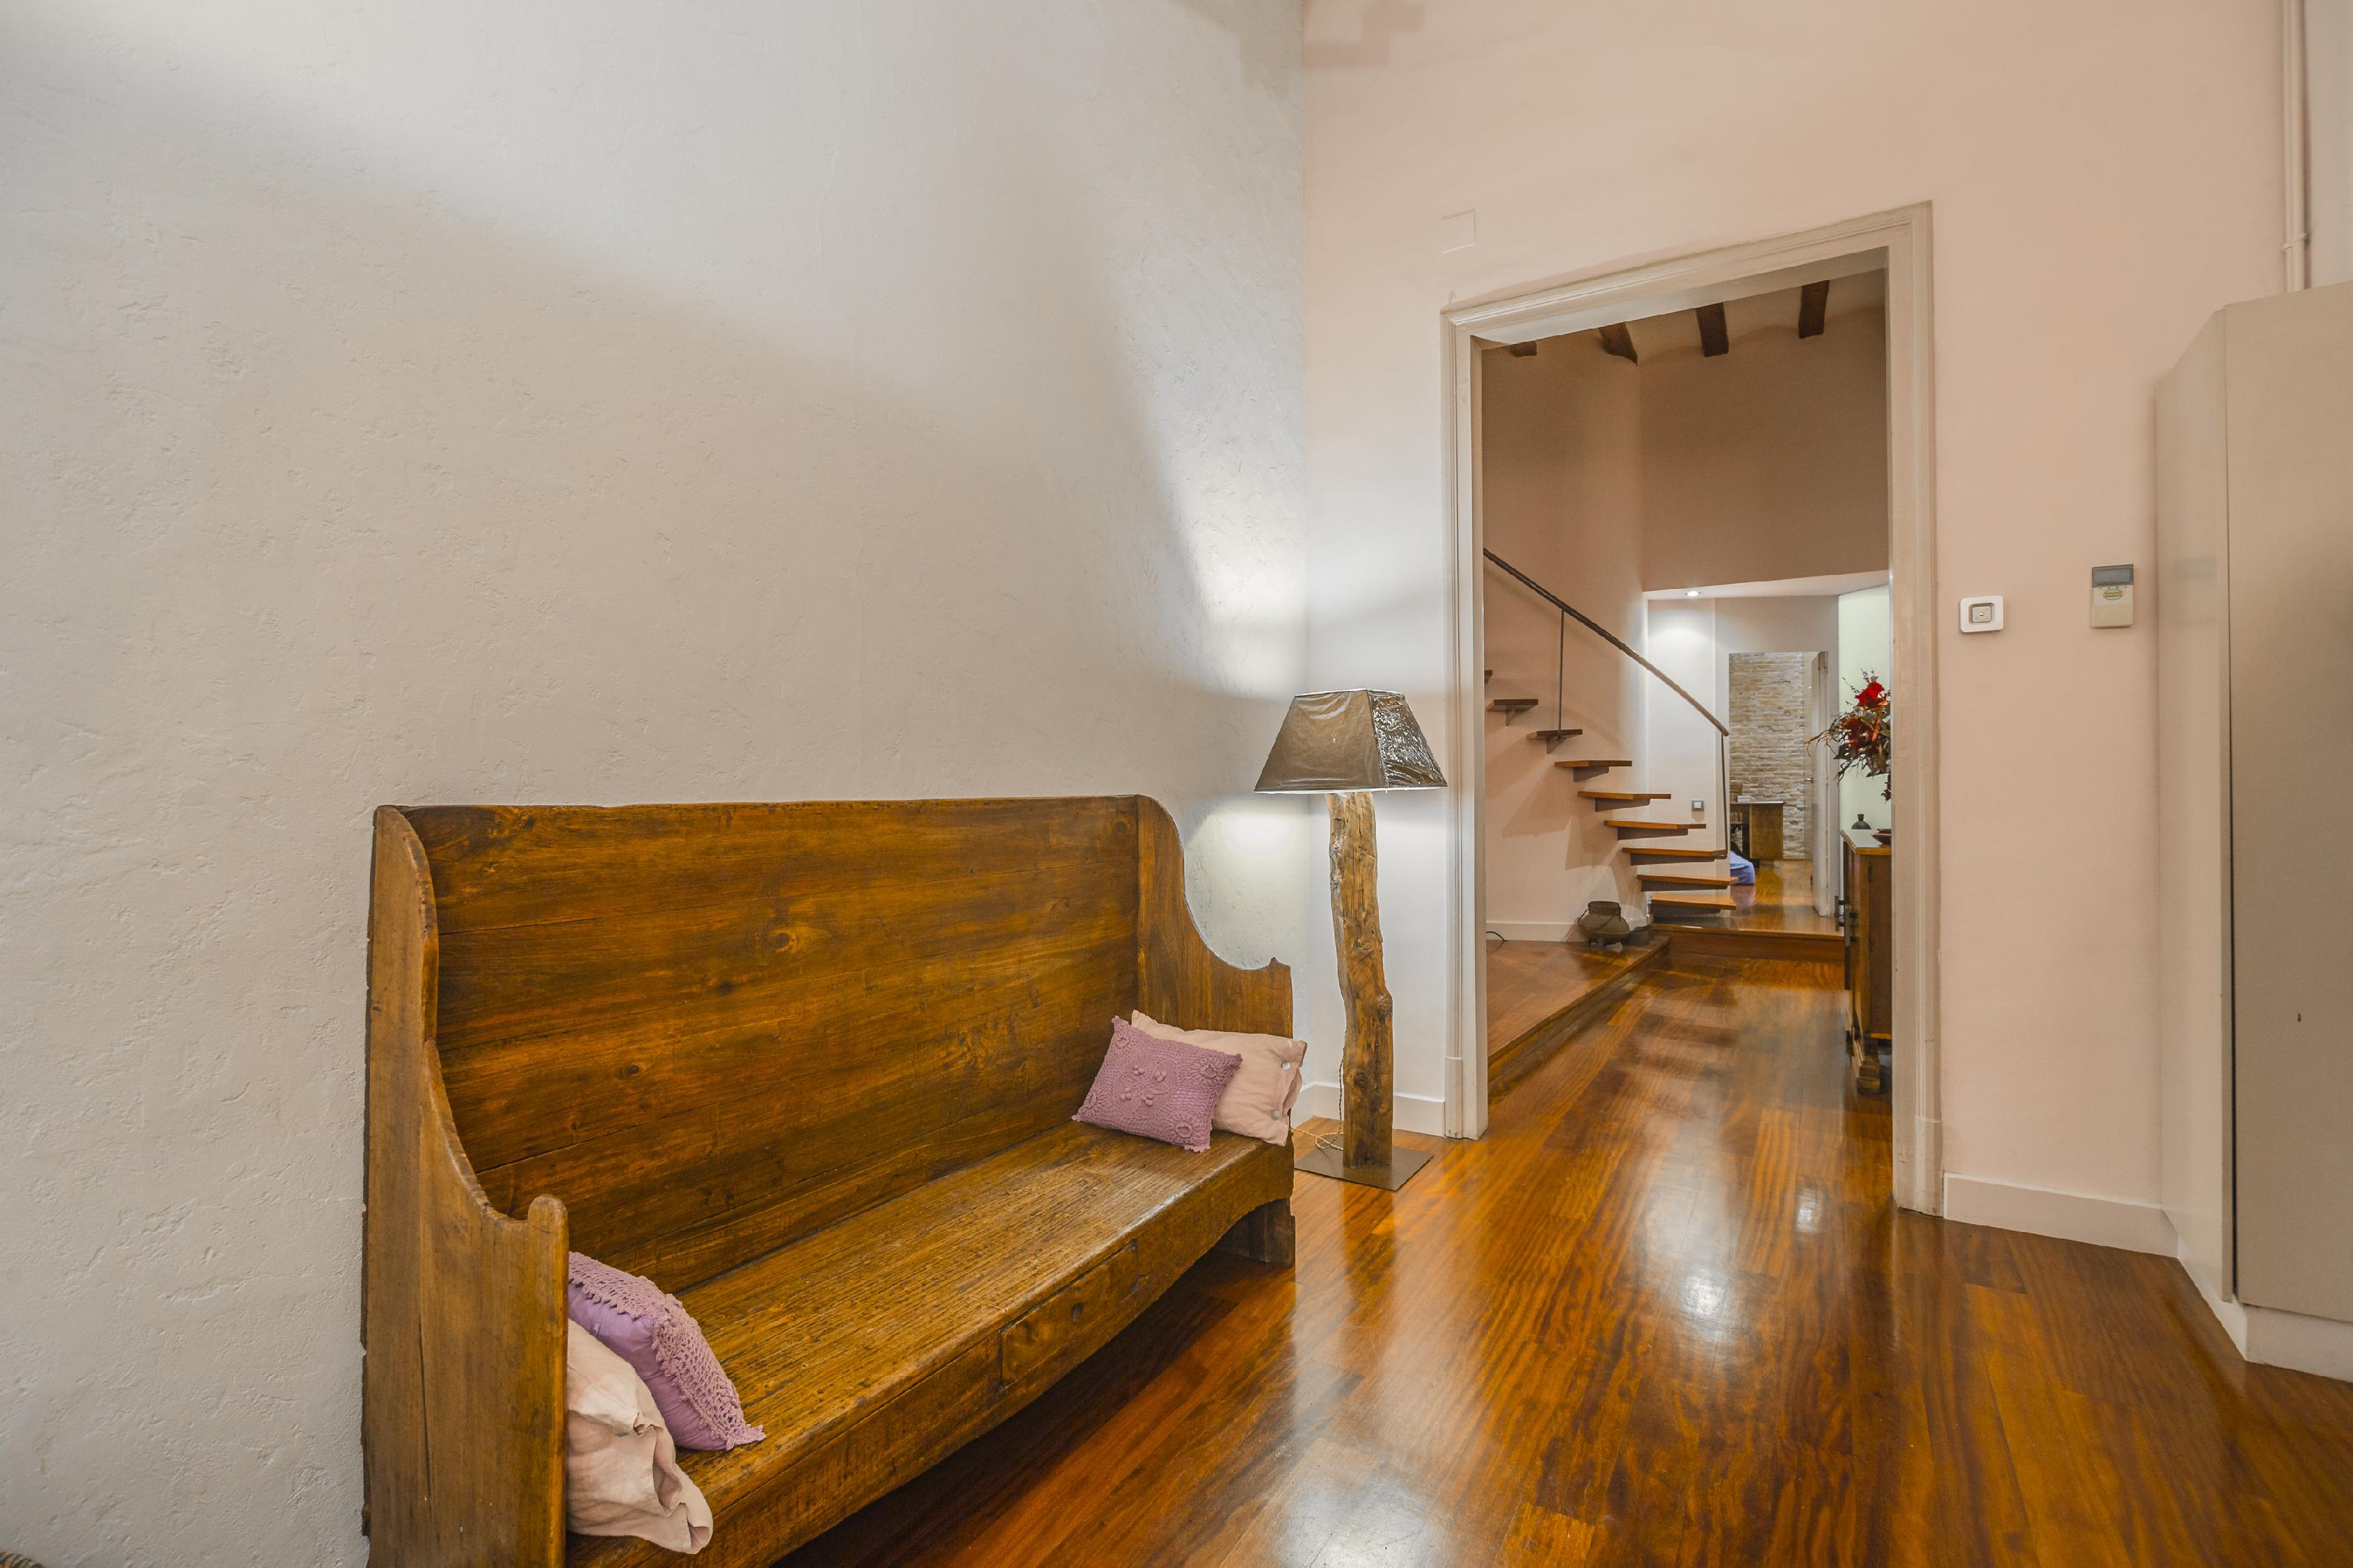 241111 Flat for sale in Ciutat Vella, Barri Gótic 13